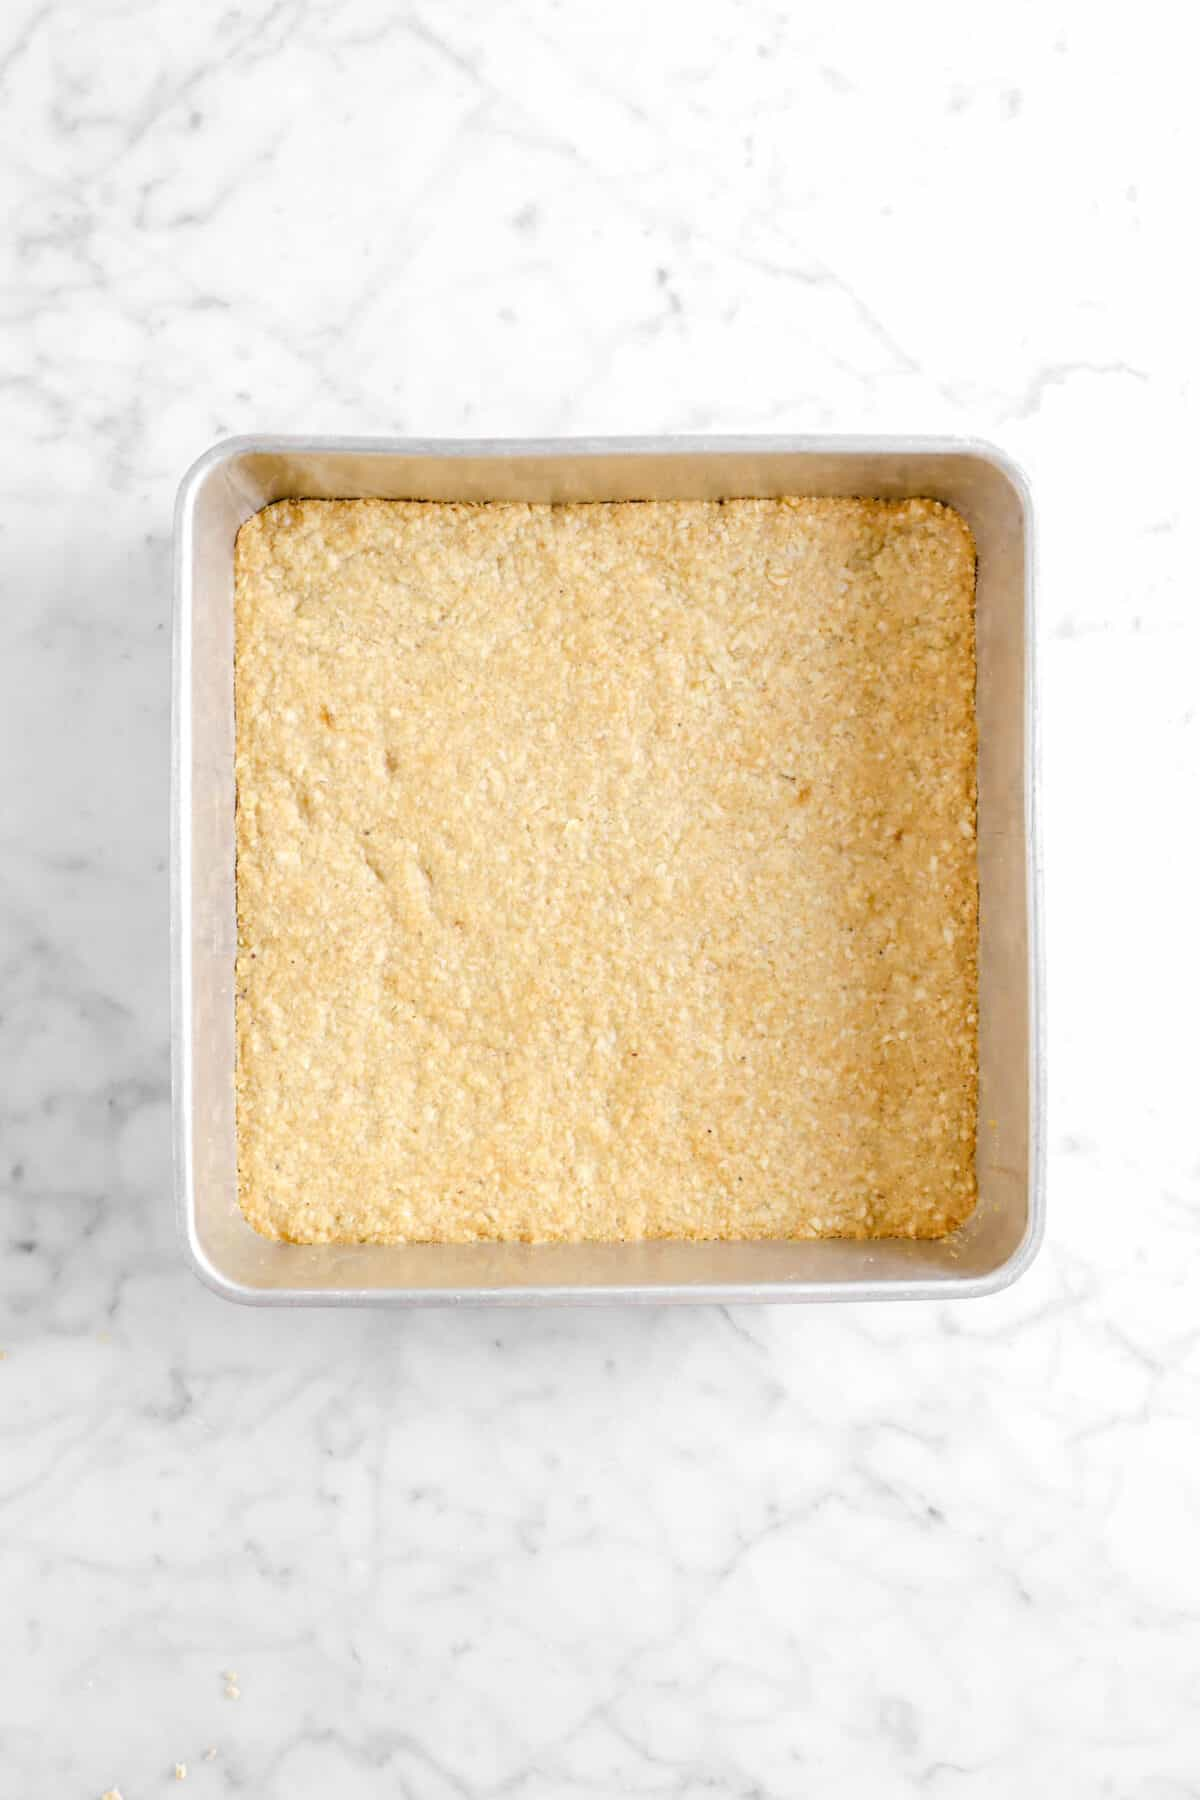 baked crumble bar base in square pan